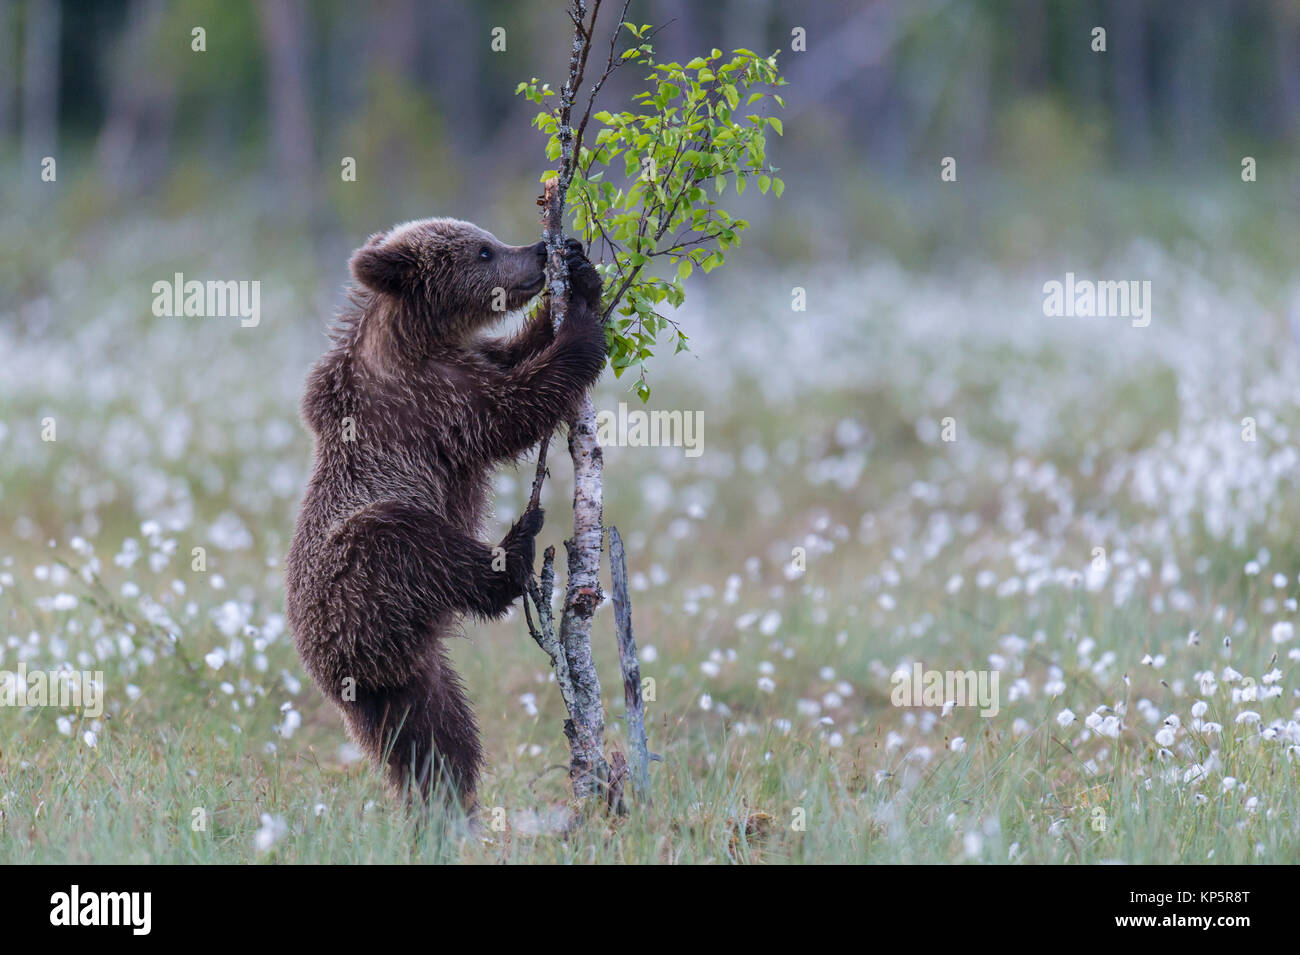 young brown bear try to climb a small birch tree - Stock Image